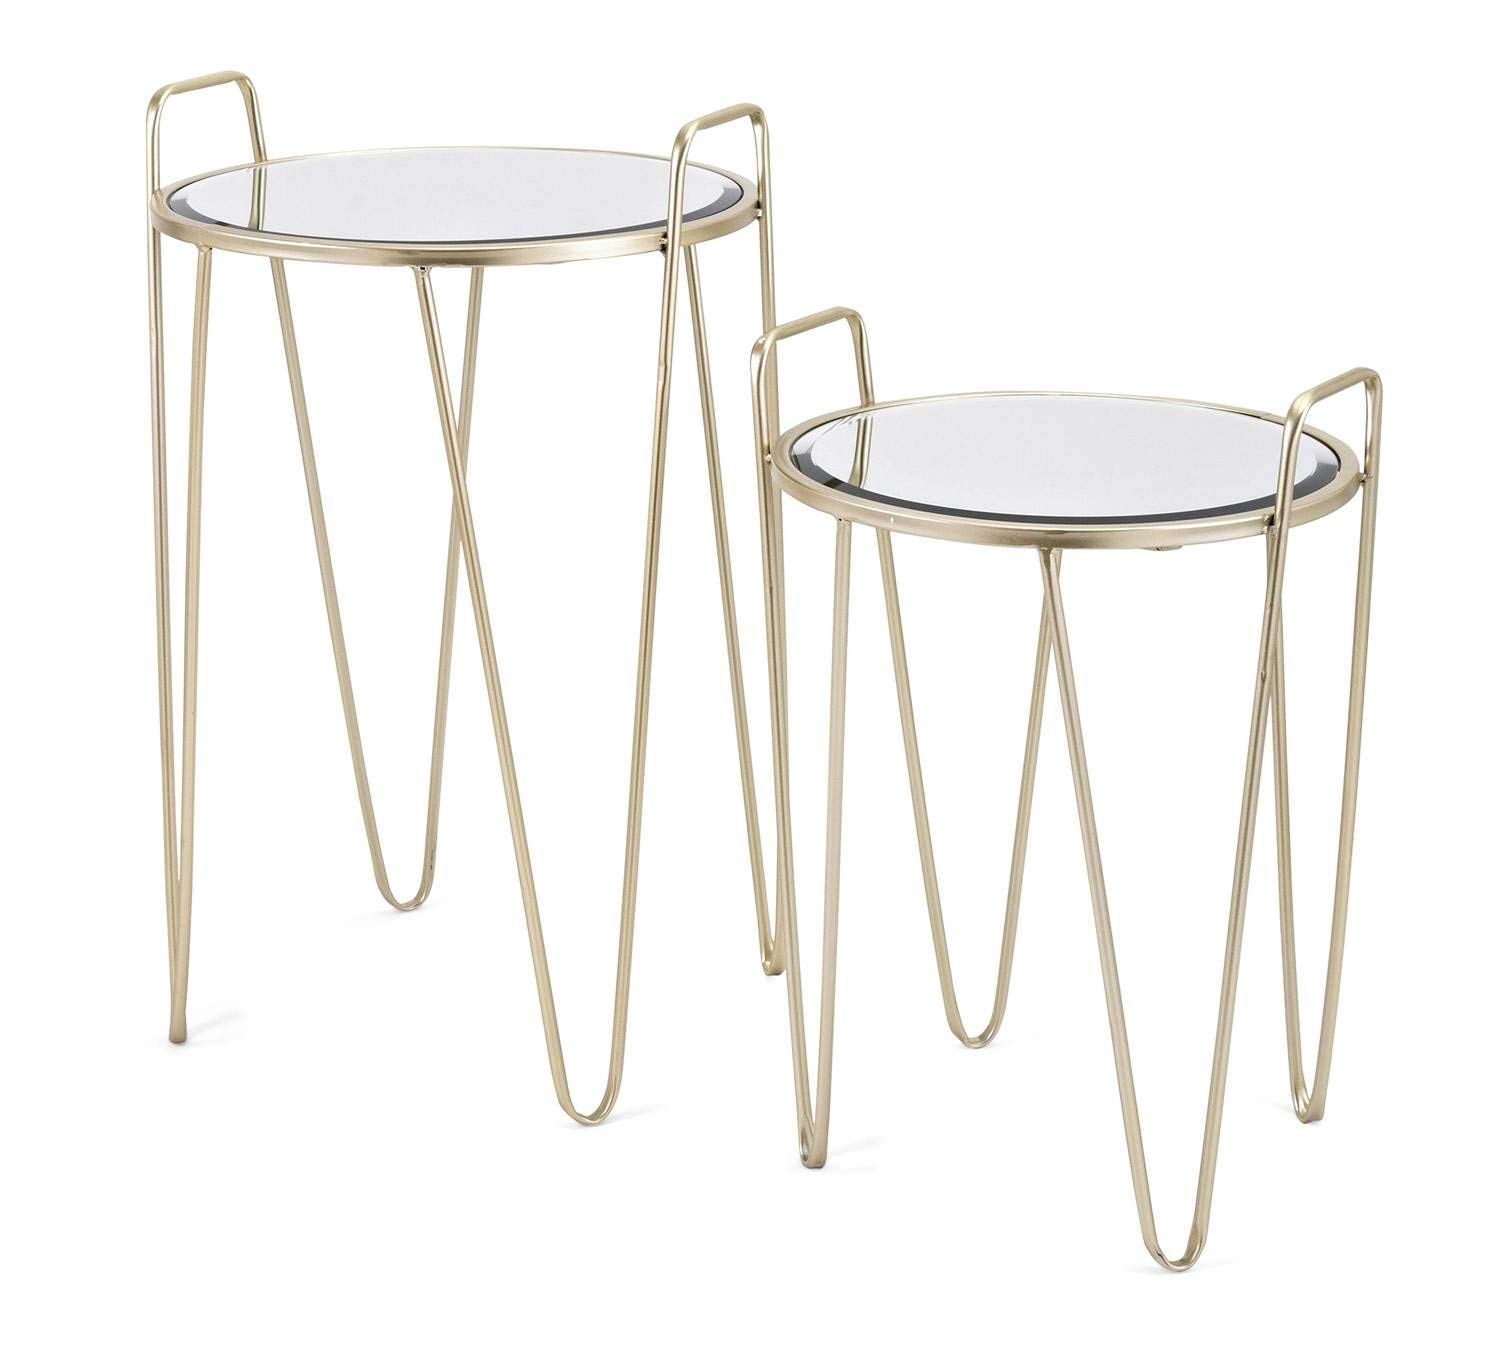 mirrored side tables find accent edmonton get quotations home furnishings set satin gold finished with glass tops ultra modern table lamps oak door threshold long skinny small